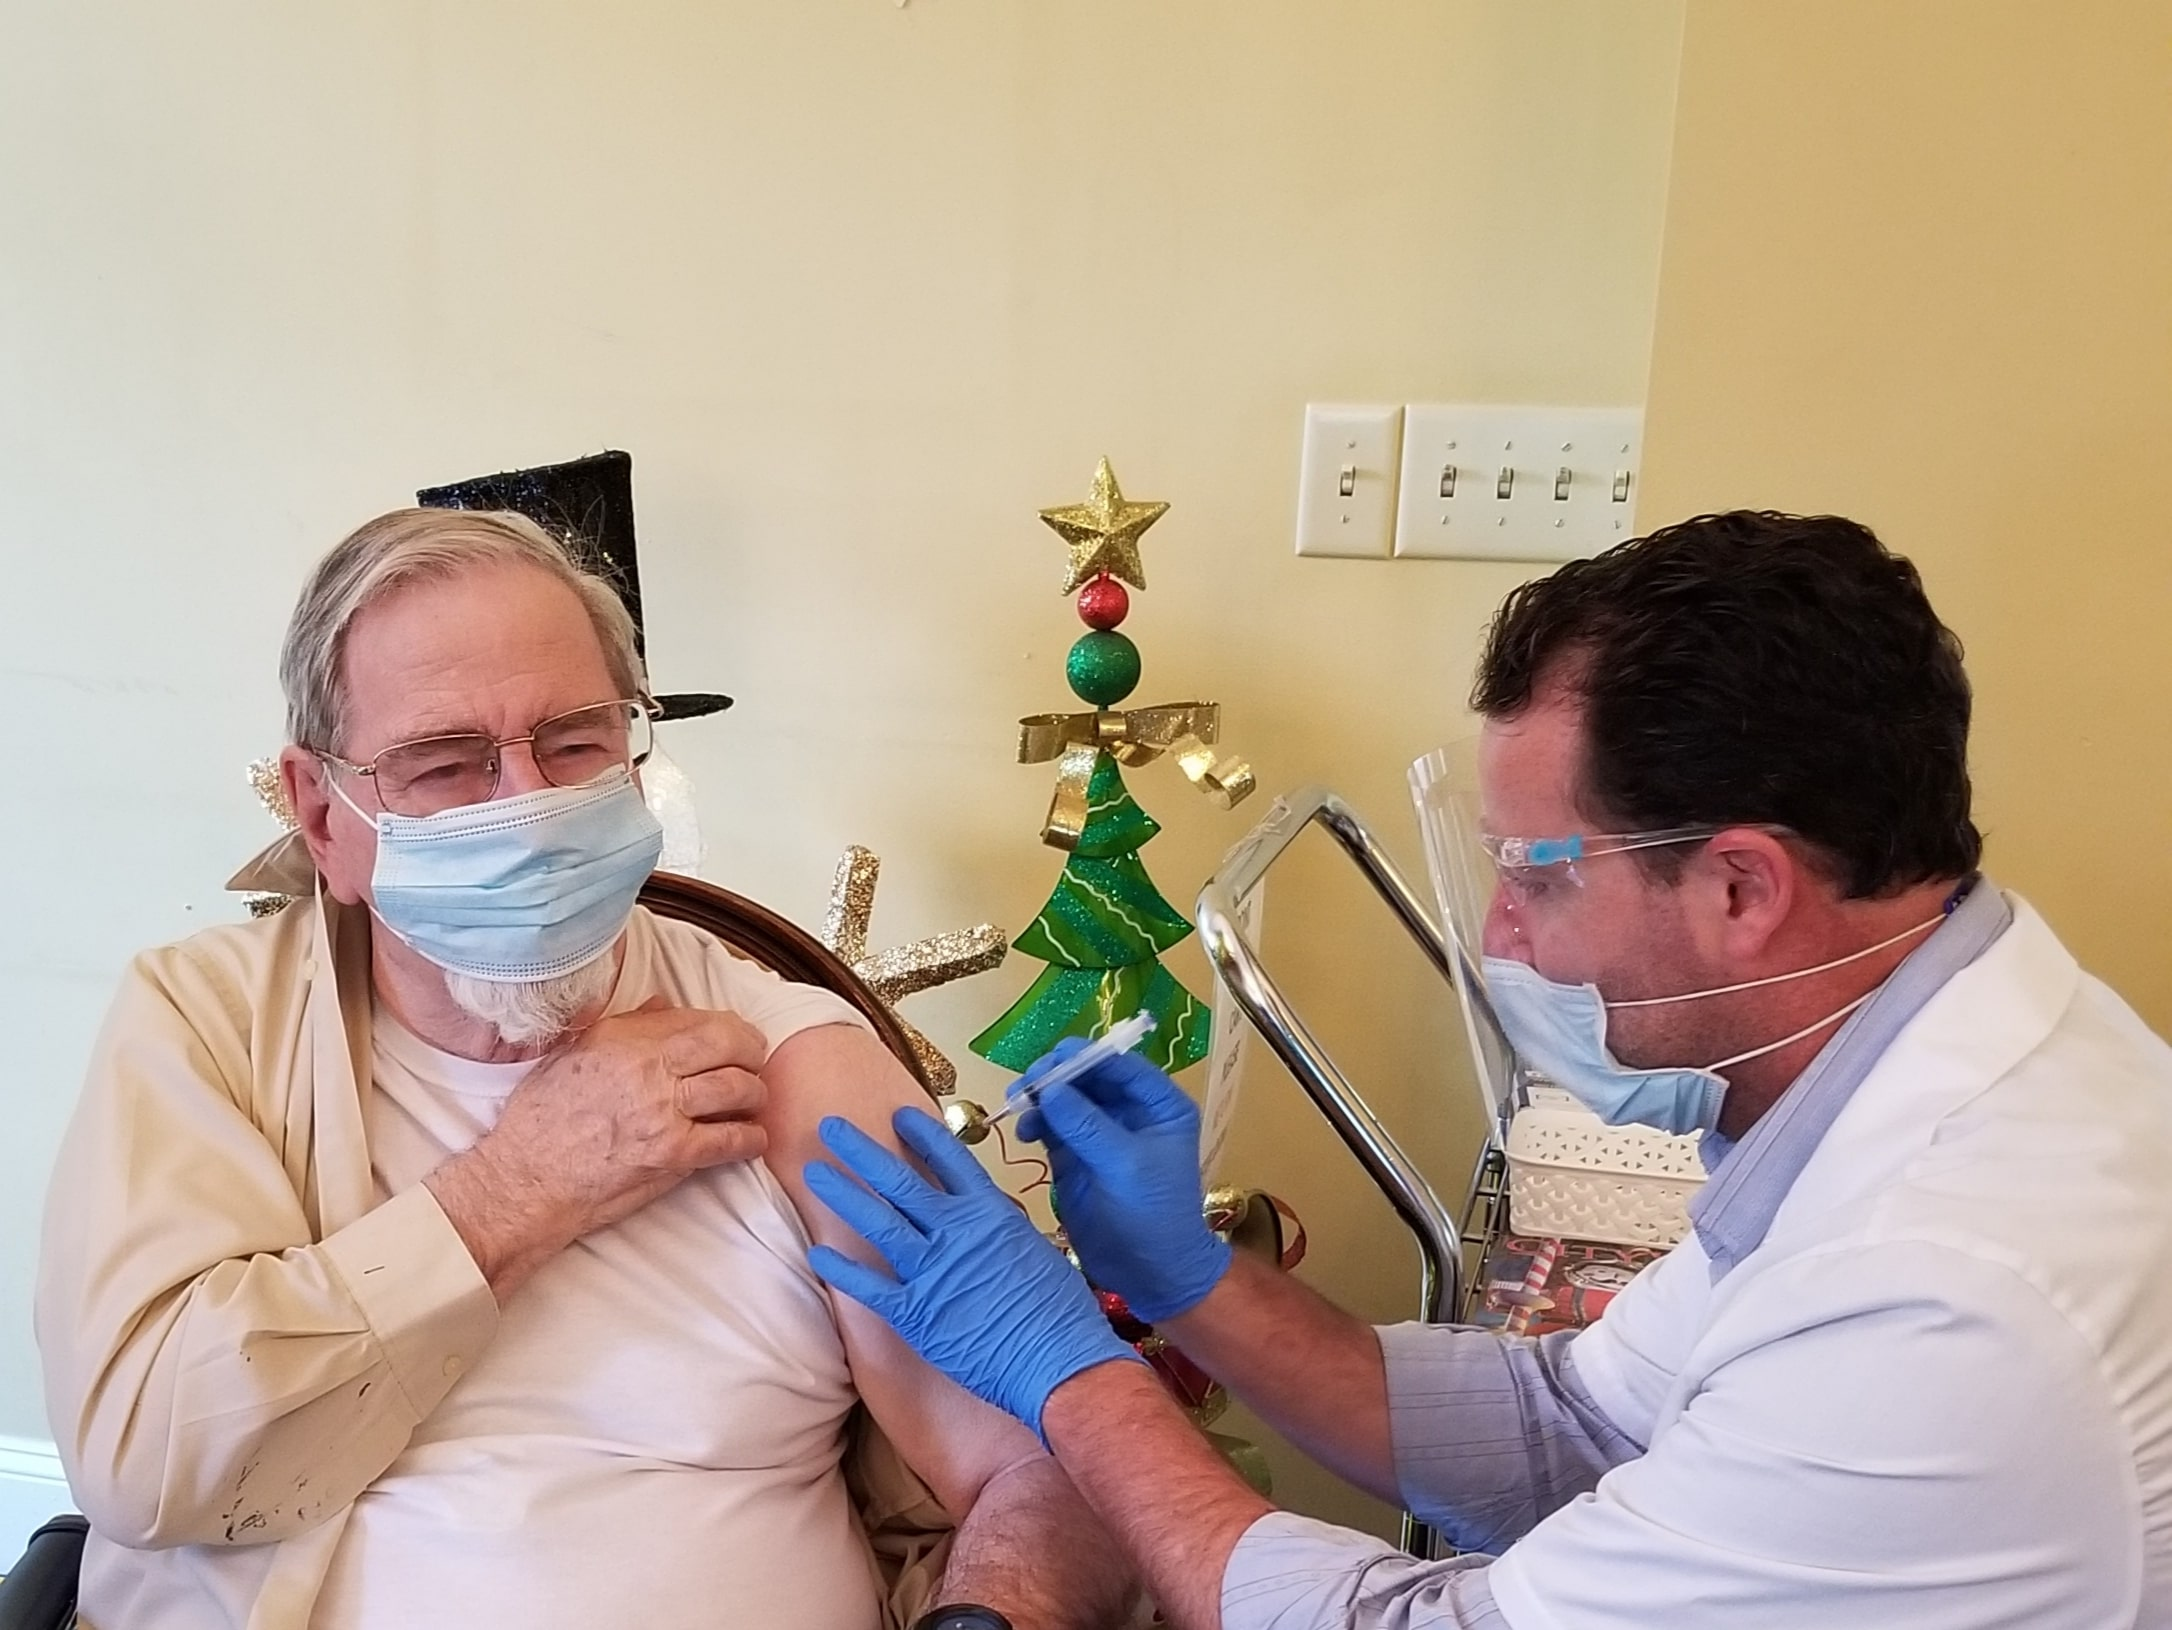 First Residents At The Carolina Inn Receive COVID-19 Vaccine